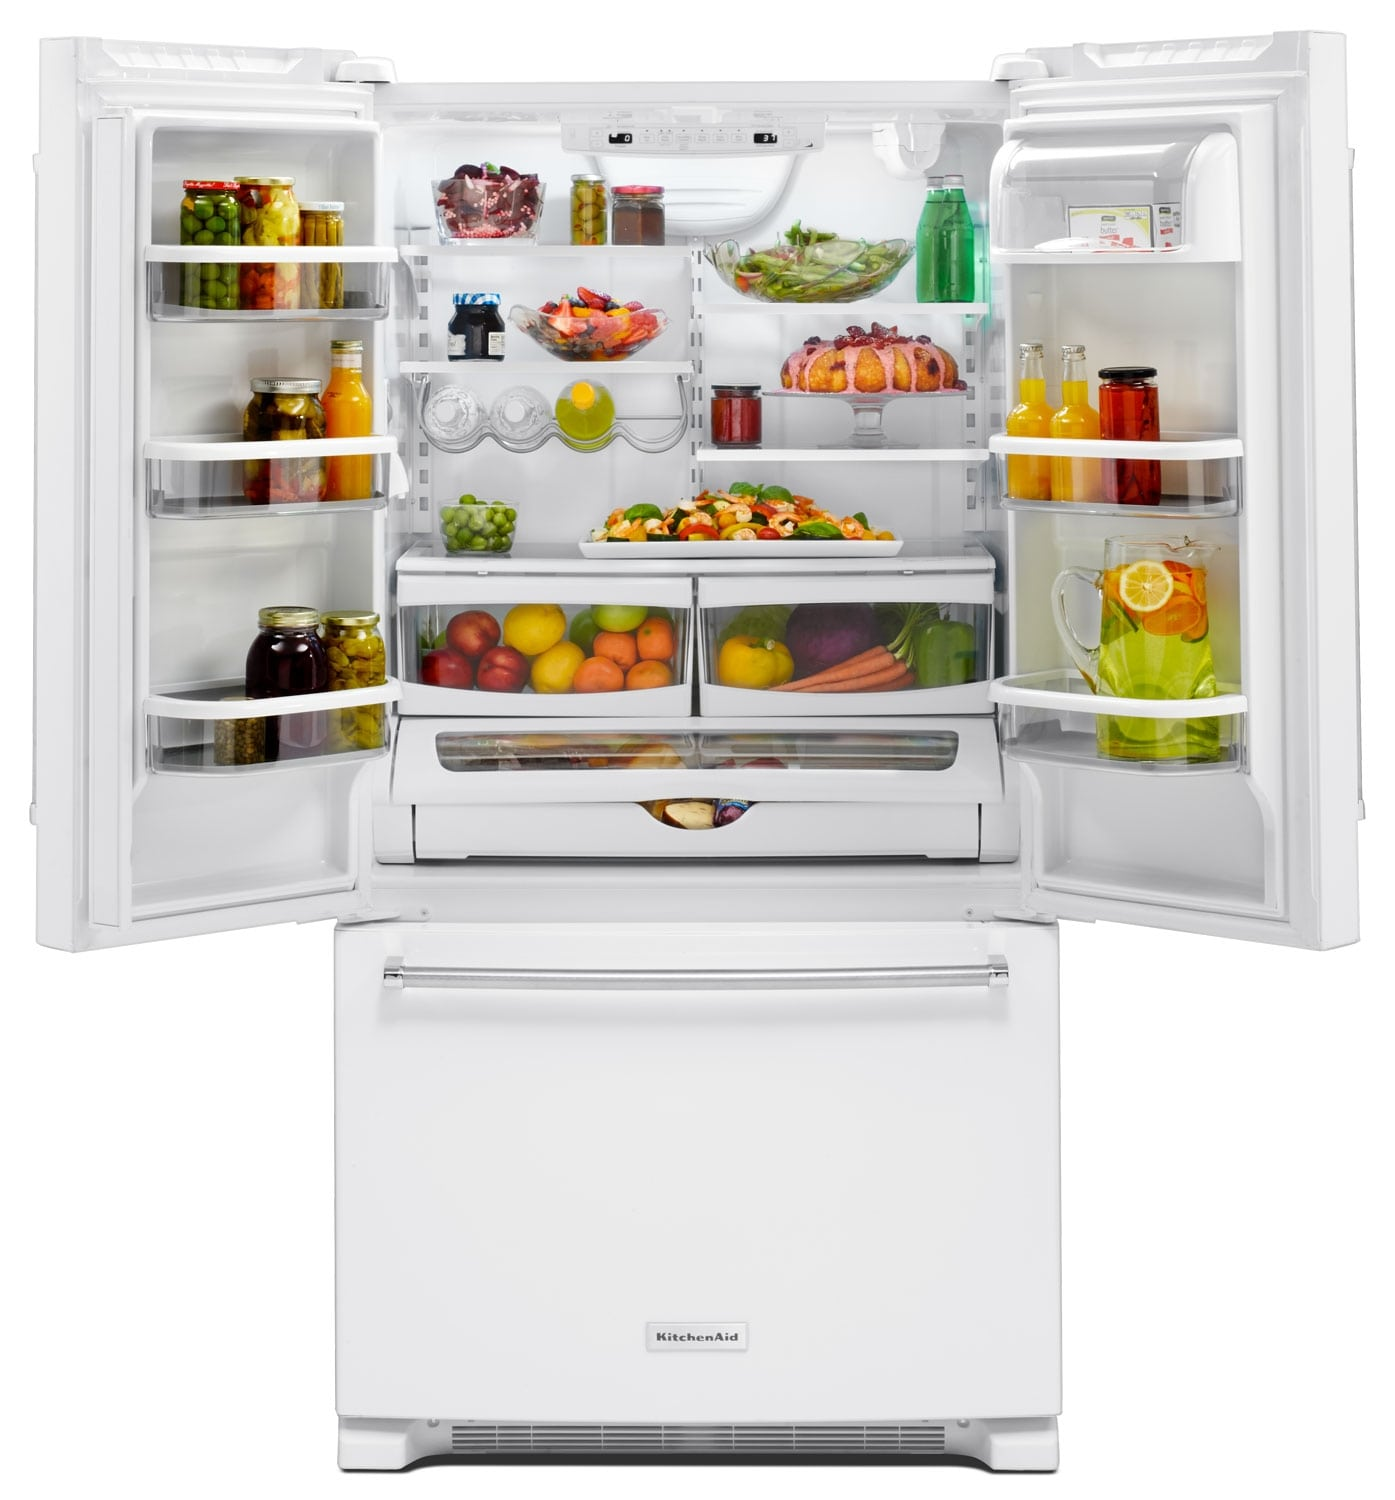 KitchenAid 20 Cu. Ft. French Door Refrigerator With